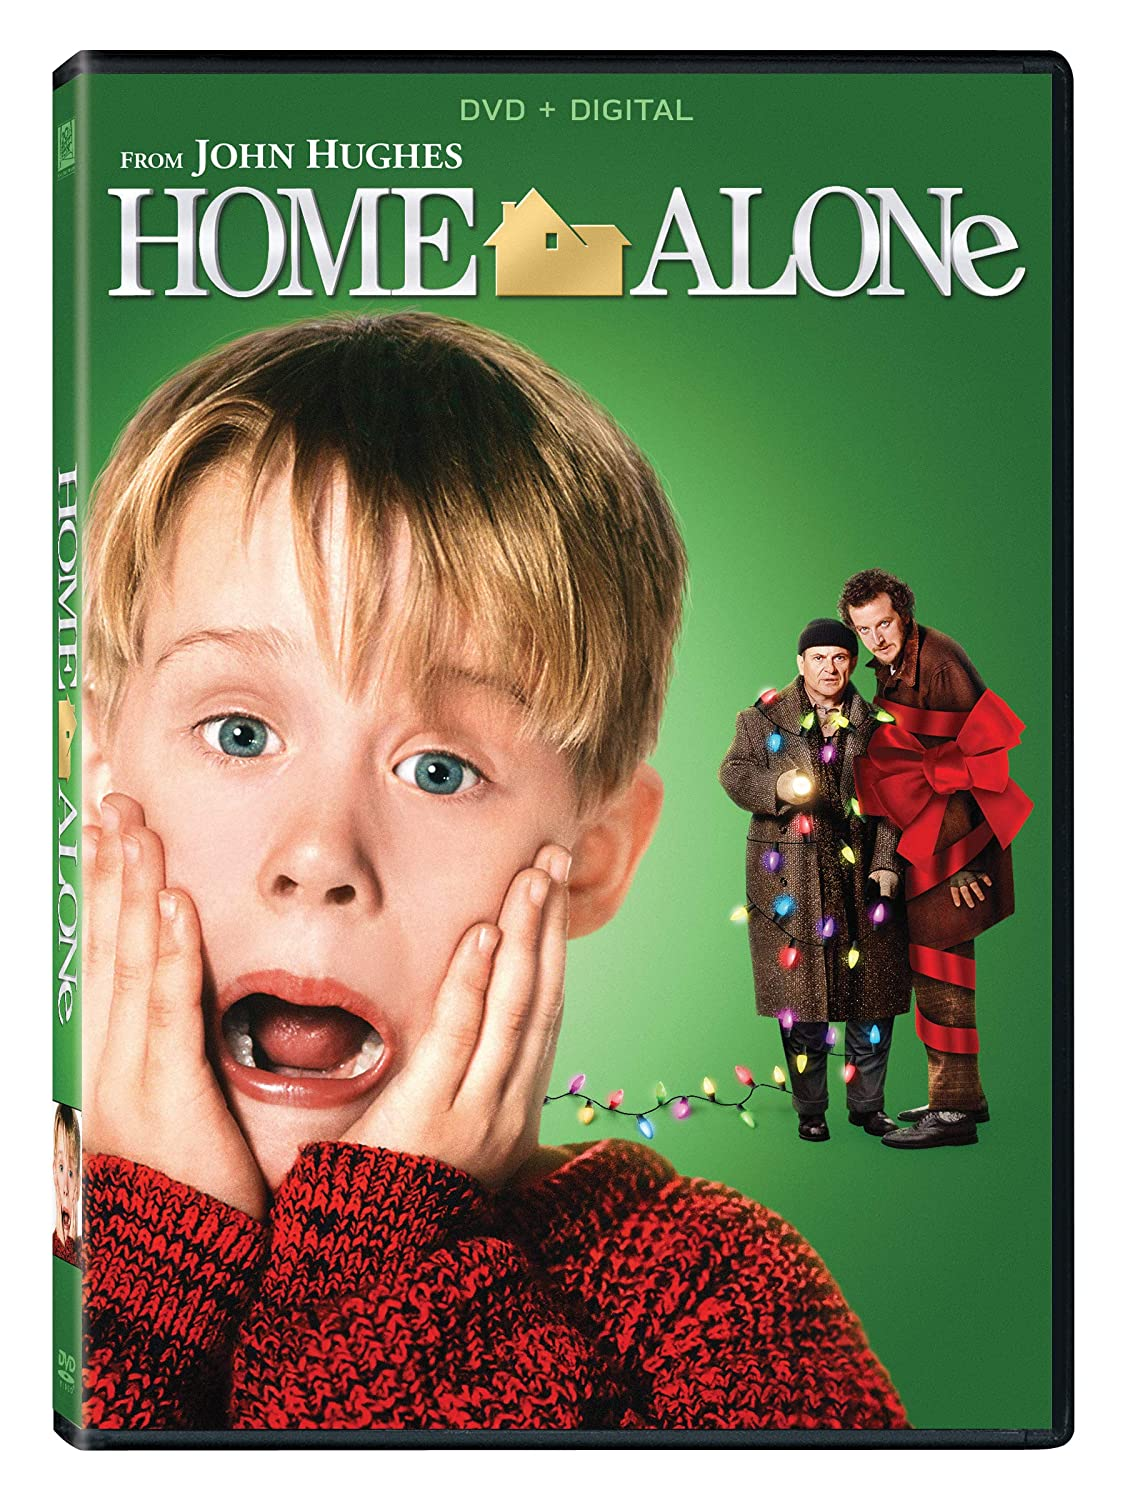 Home Alone and How Much that trip would cost